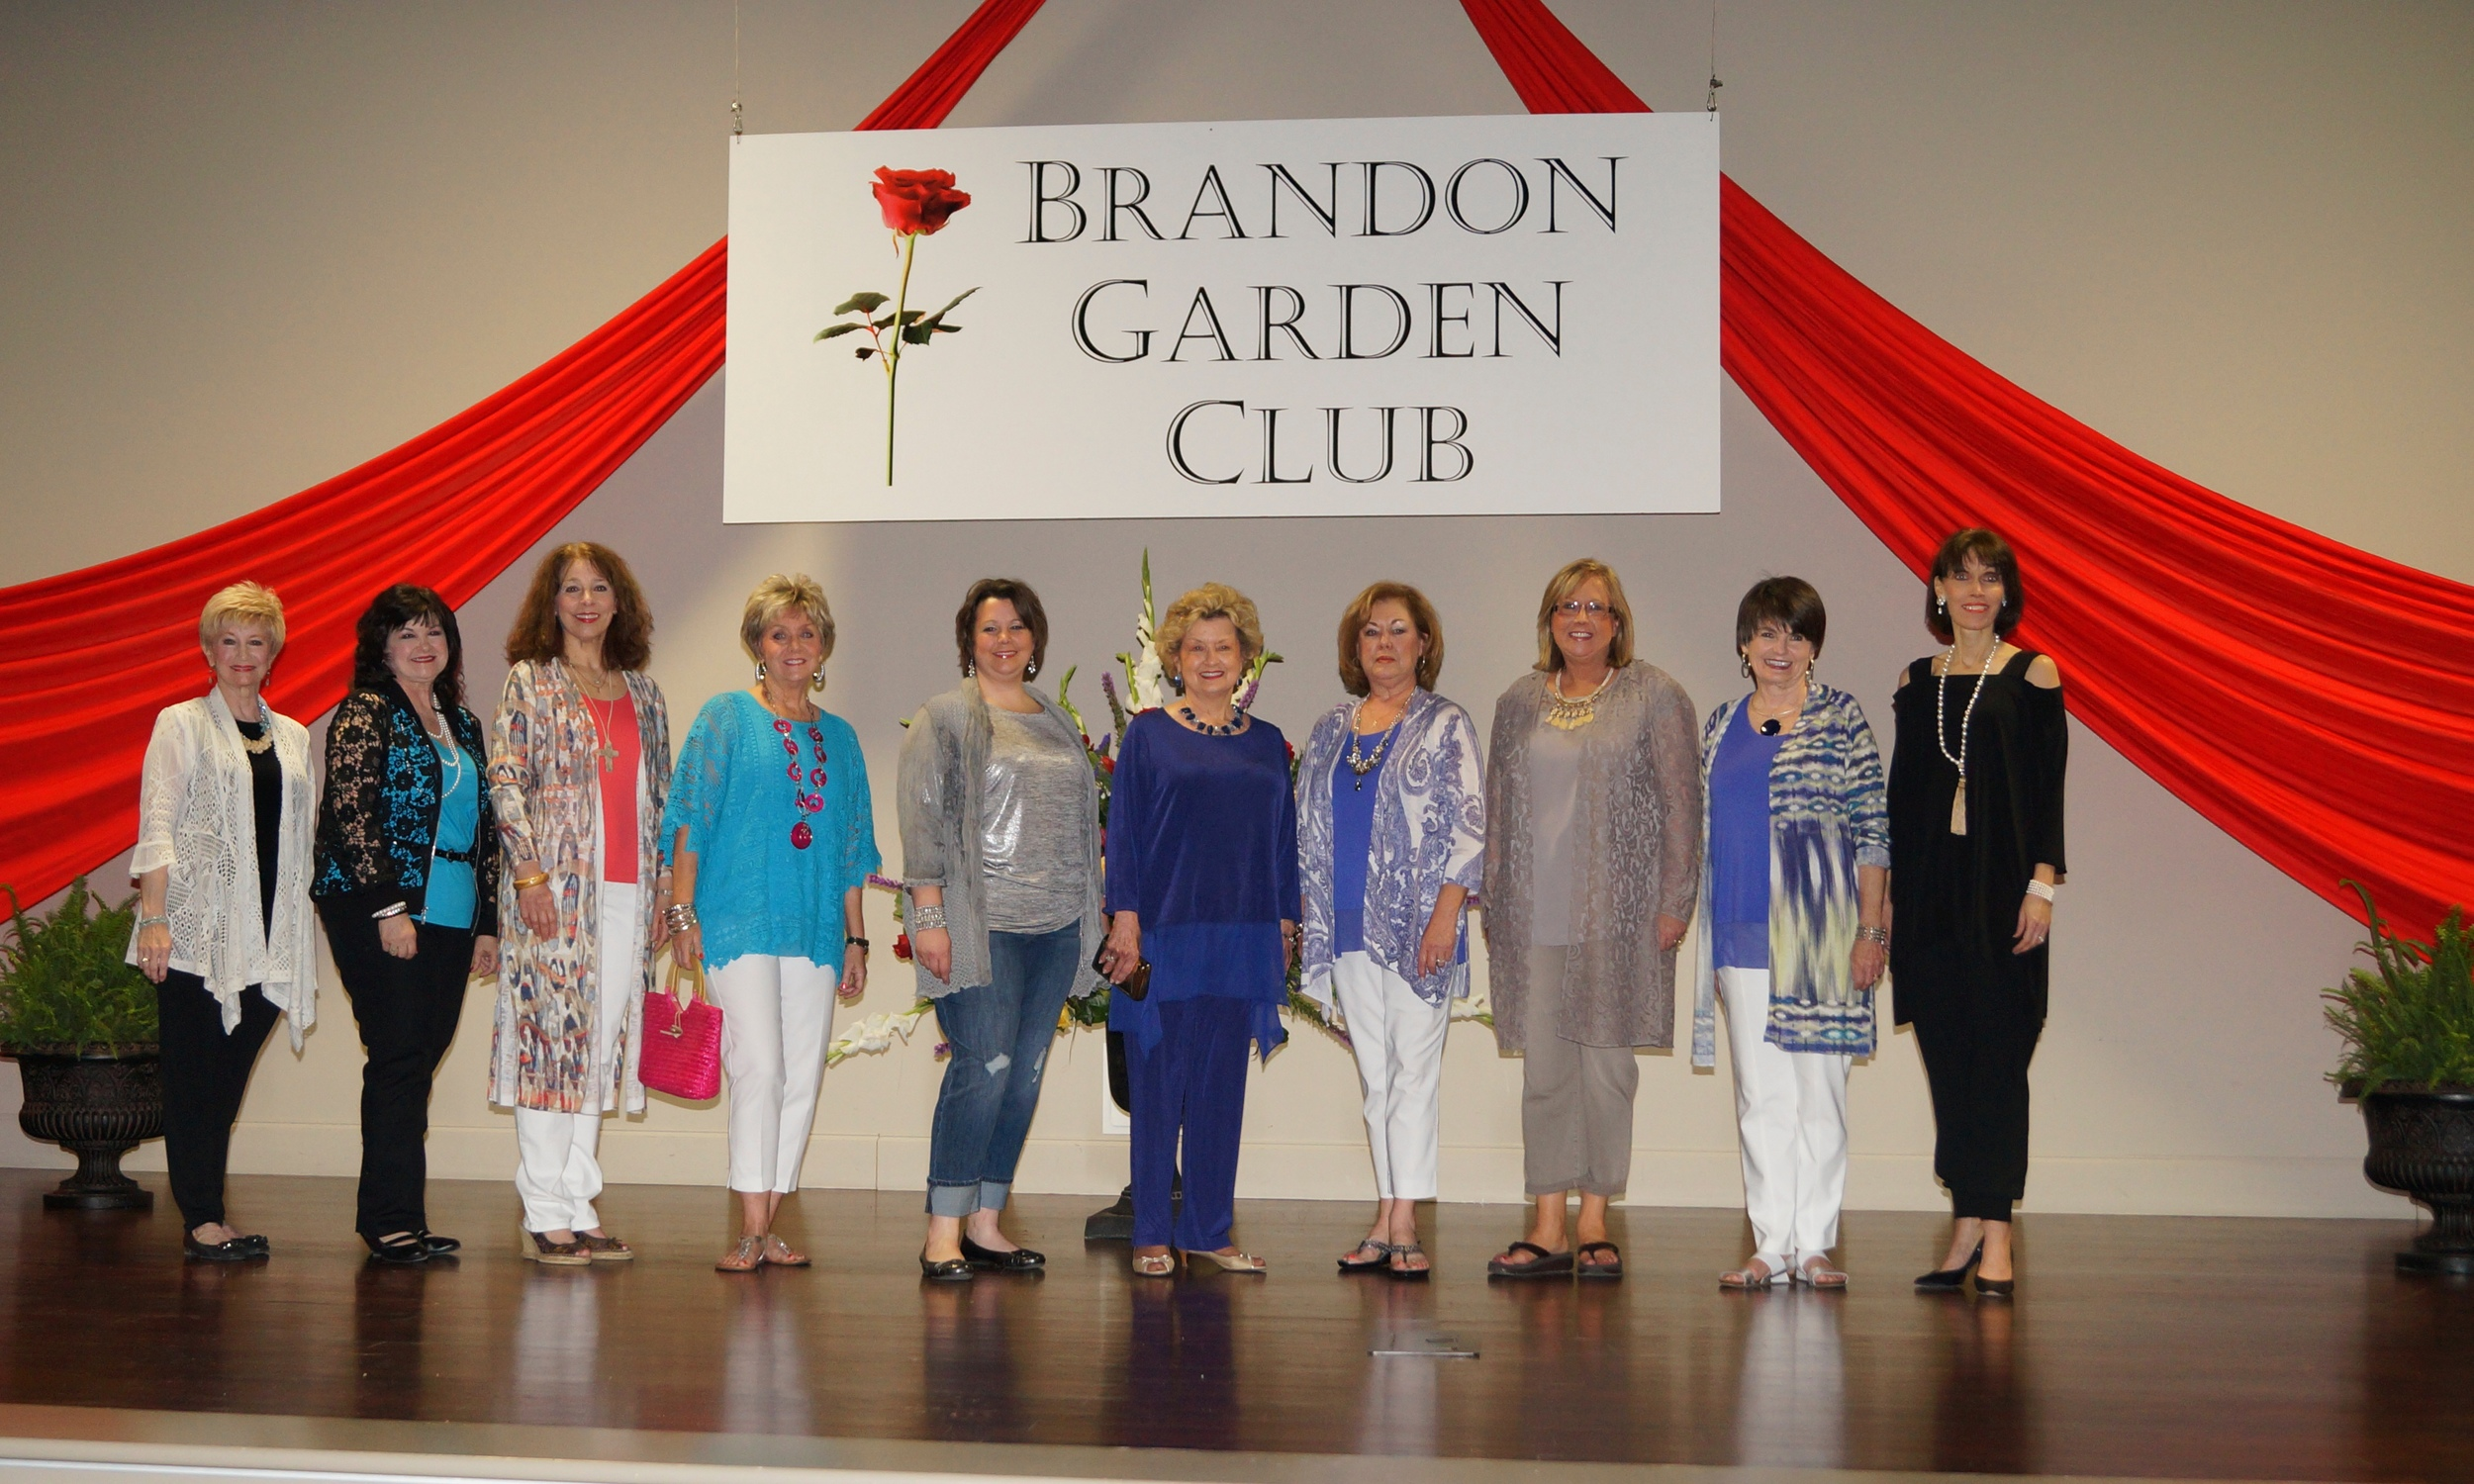 Brandon Garden Club's (BGC) eighth annual  Tablescapes  Luncheon included a fashion show with clothing from Chico's Flowood. Former BGC Presidents and BGC's 2013 Hinds Community College Scholarship recipient were models. Pictured (l to r): Charla Jordan, BGC President; Brenda Sumrall Smith, Fashion Show Chairman; Camille Ferris; Cathy Brown, Ashley Vaughan; Marianna Martin; Linda Hogue; Marilyn Hughes; Terry Guest; and Trudy McLaurin.